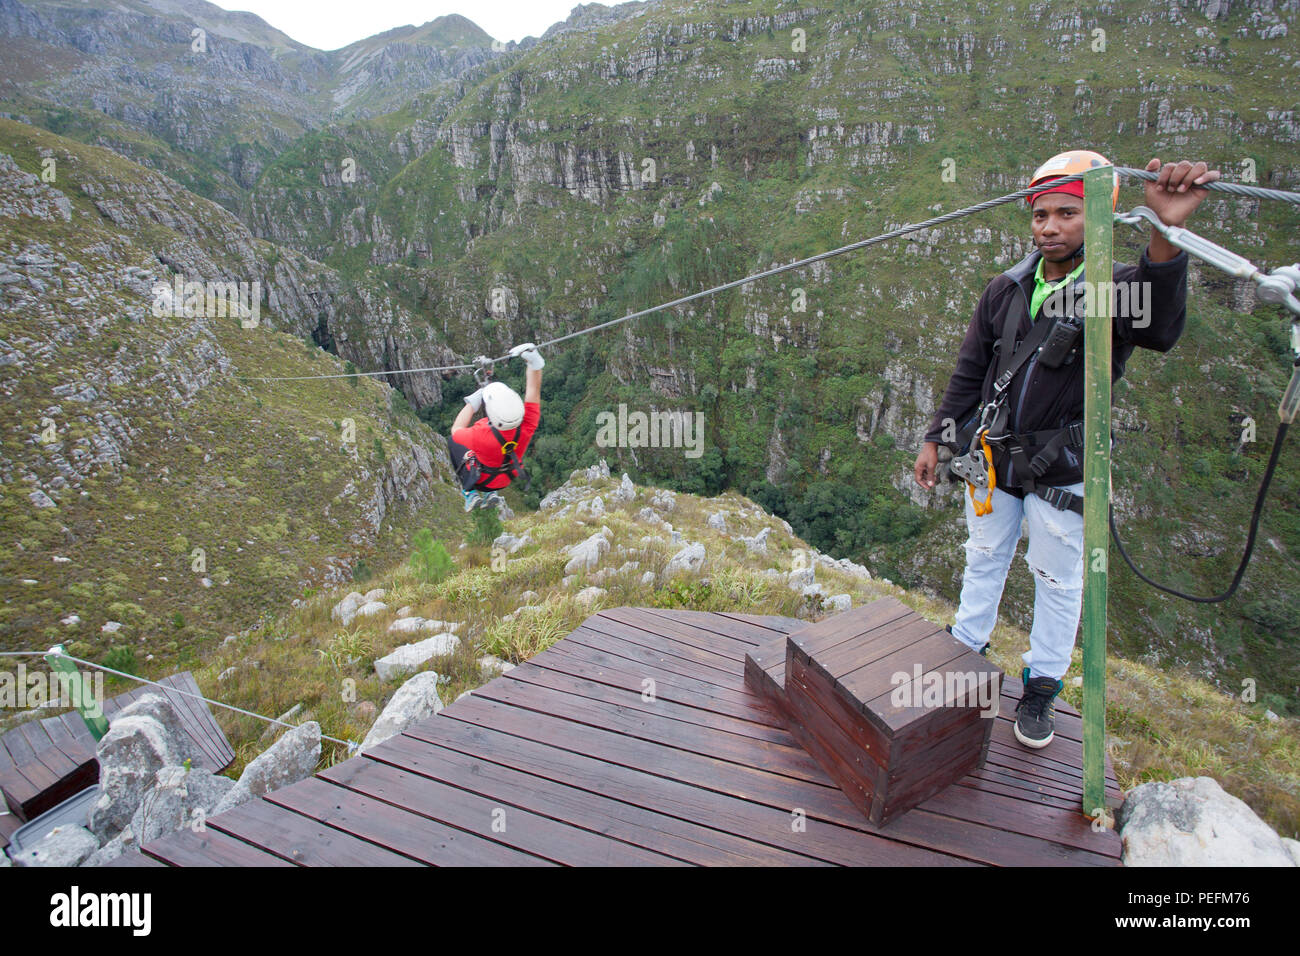 Zip lining in the Hottentots Holland Nature Reserve, Suicide Gorge, South Africa - Stock Image